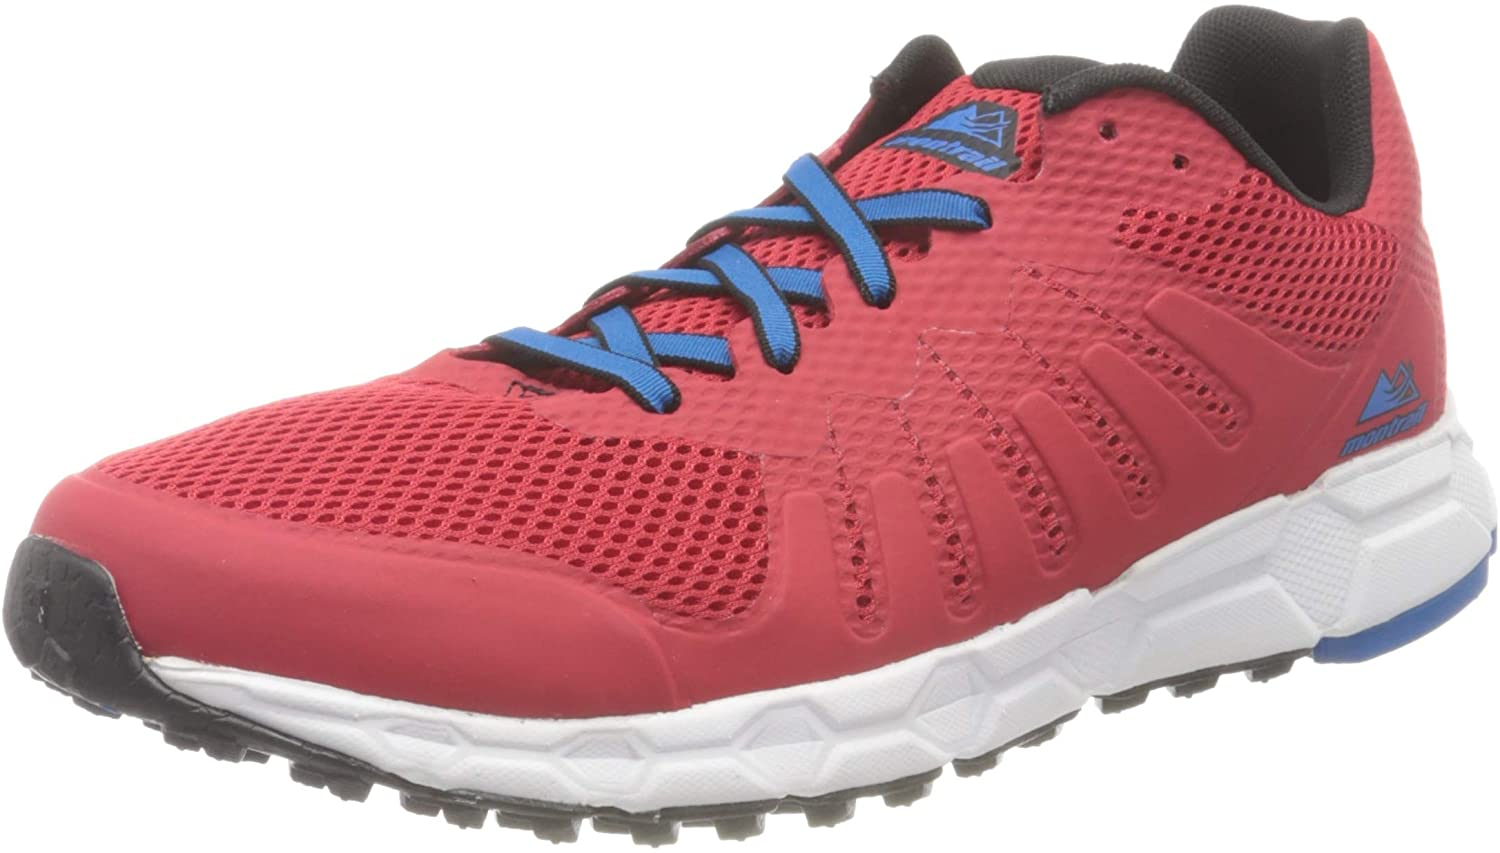 Columbia Men's Montrail F.k.t. Trail Max 50% OFF Shoe Attempt Running It is very popular